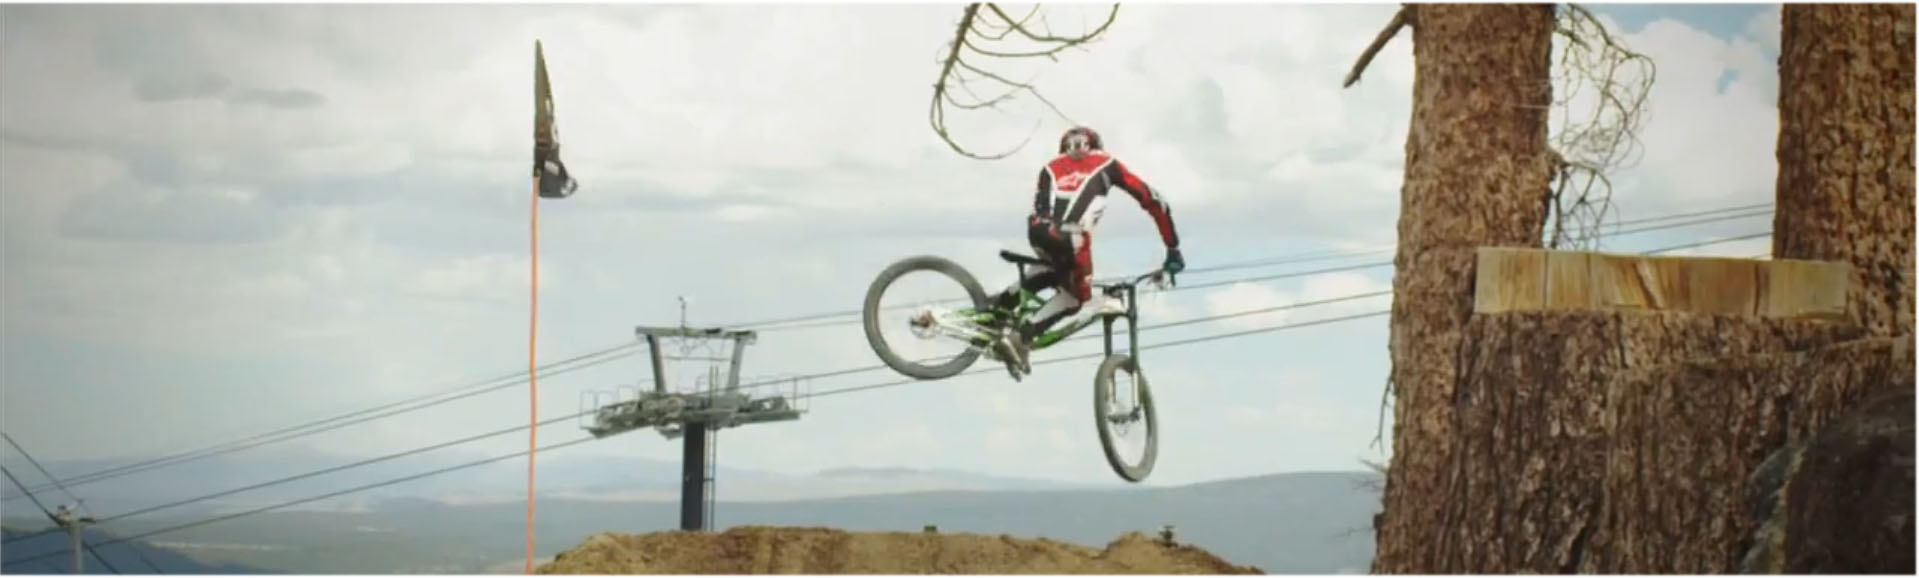 mike-montgomery-freeride-extrem-banner